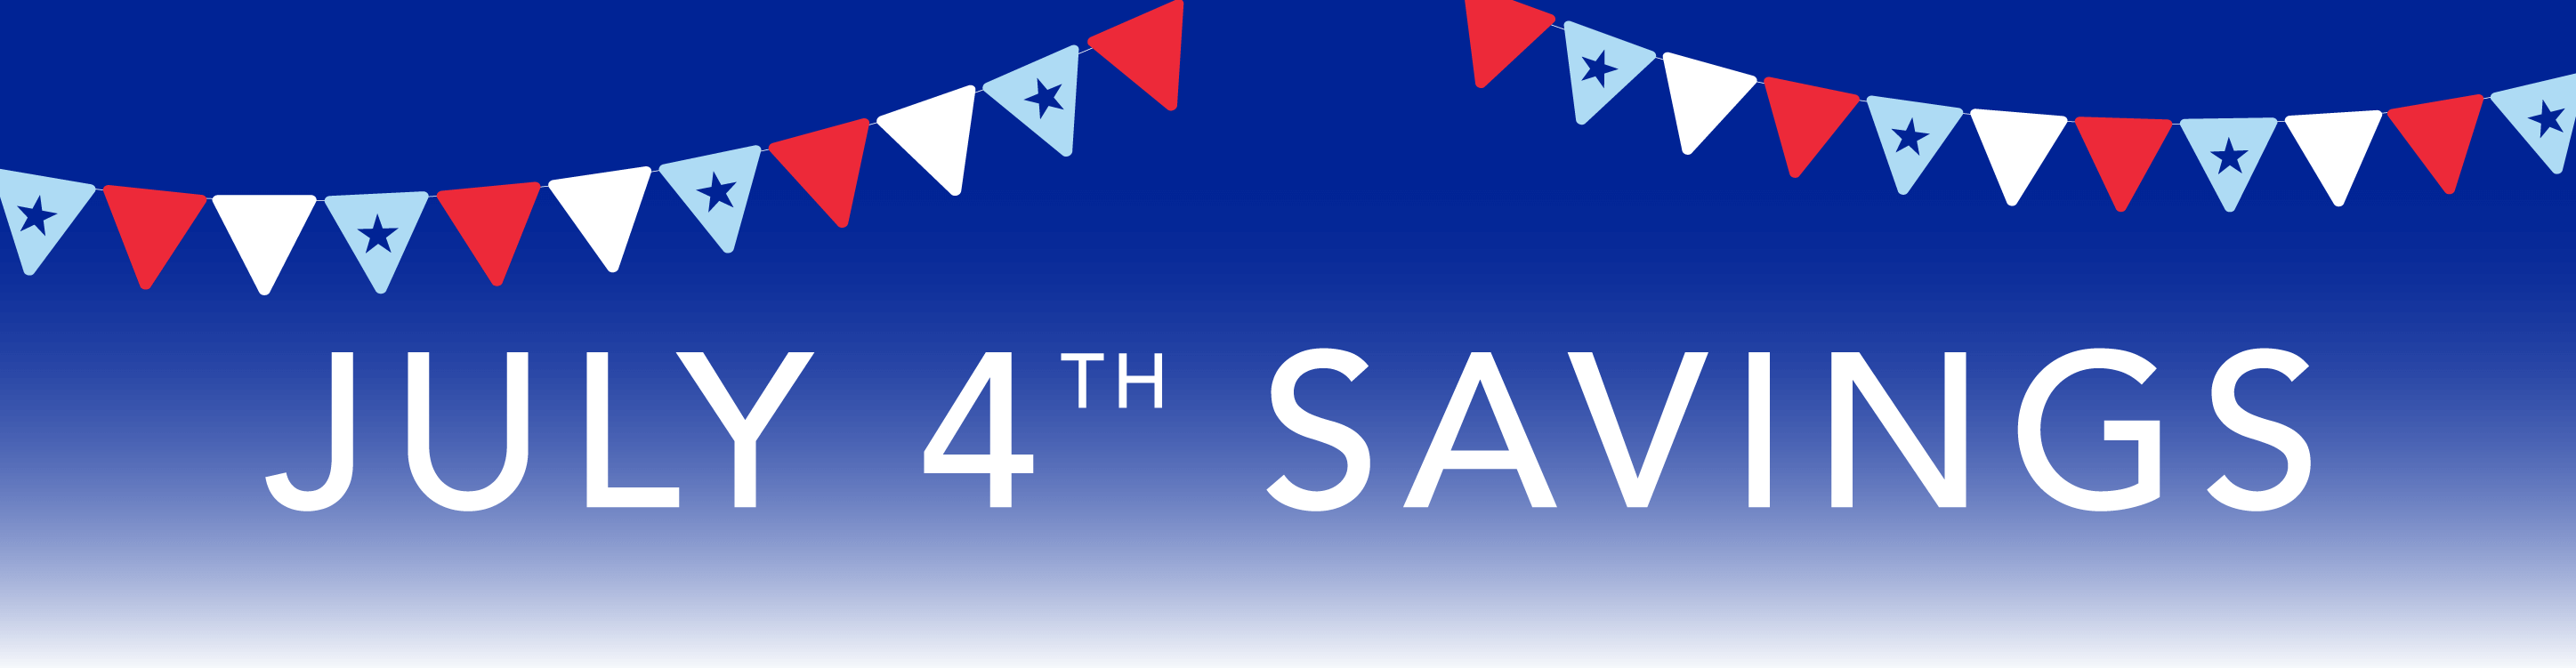 Maytag July 4th Savings Event